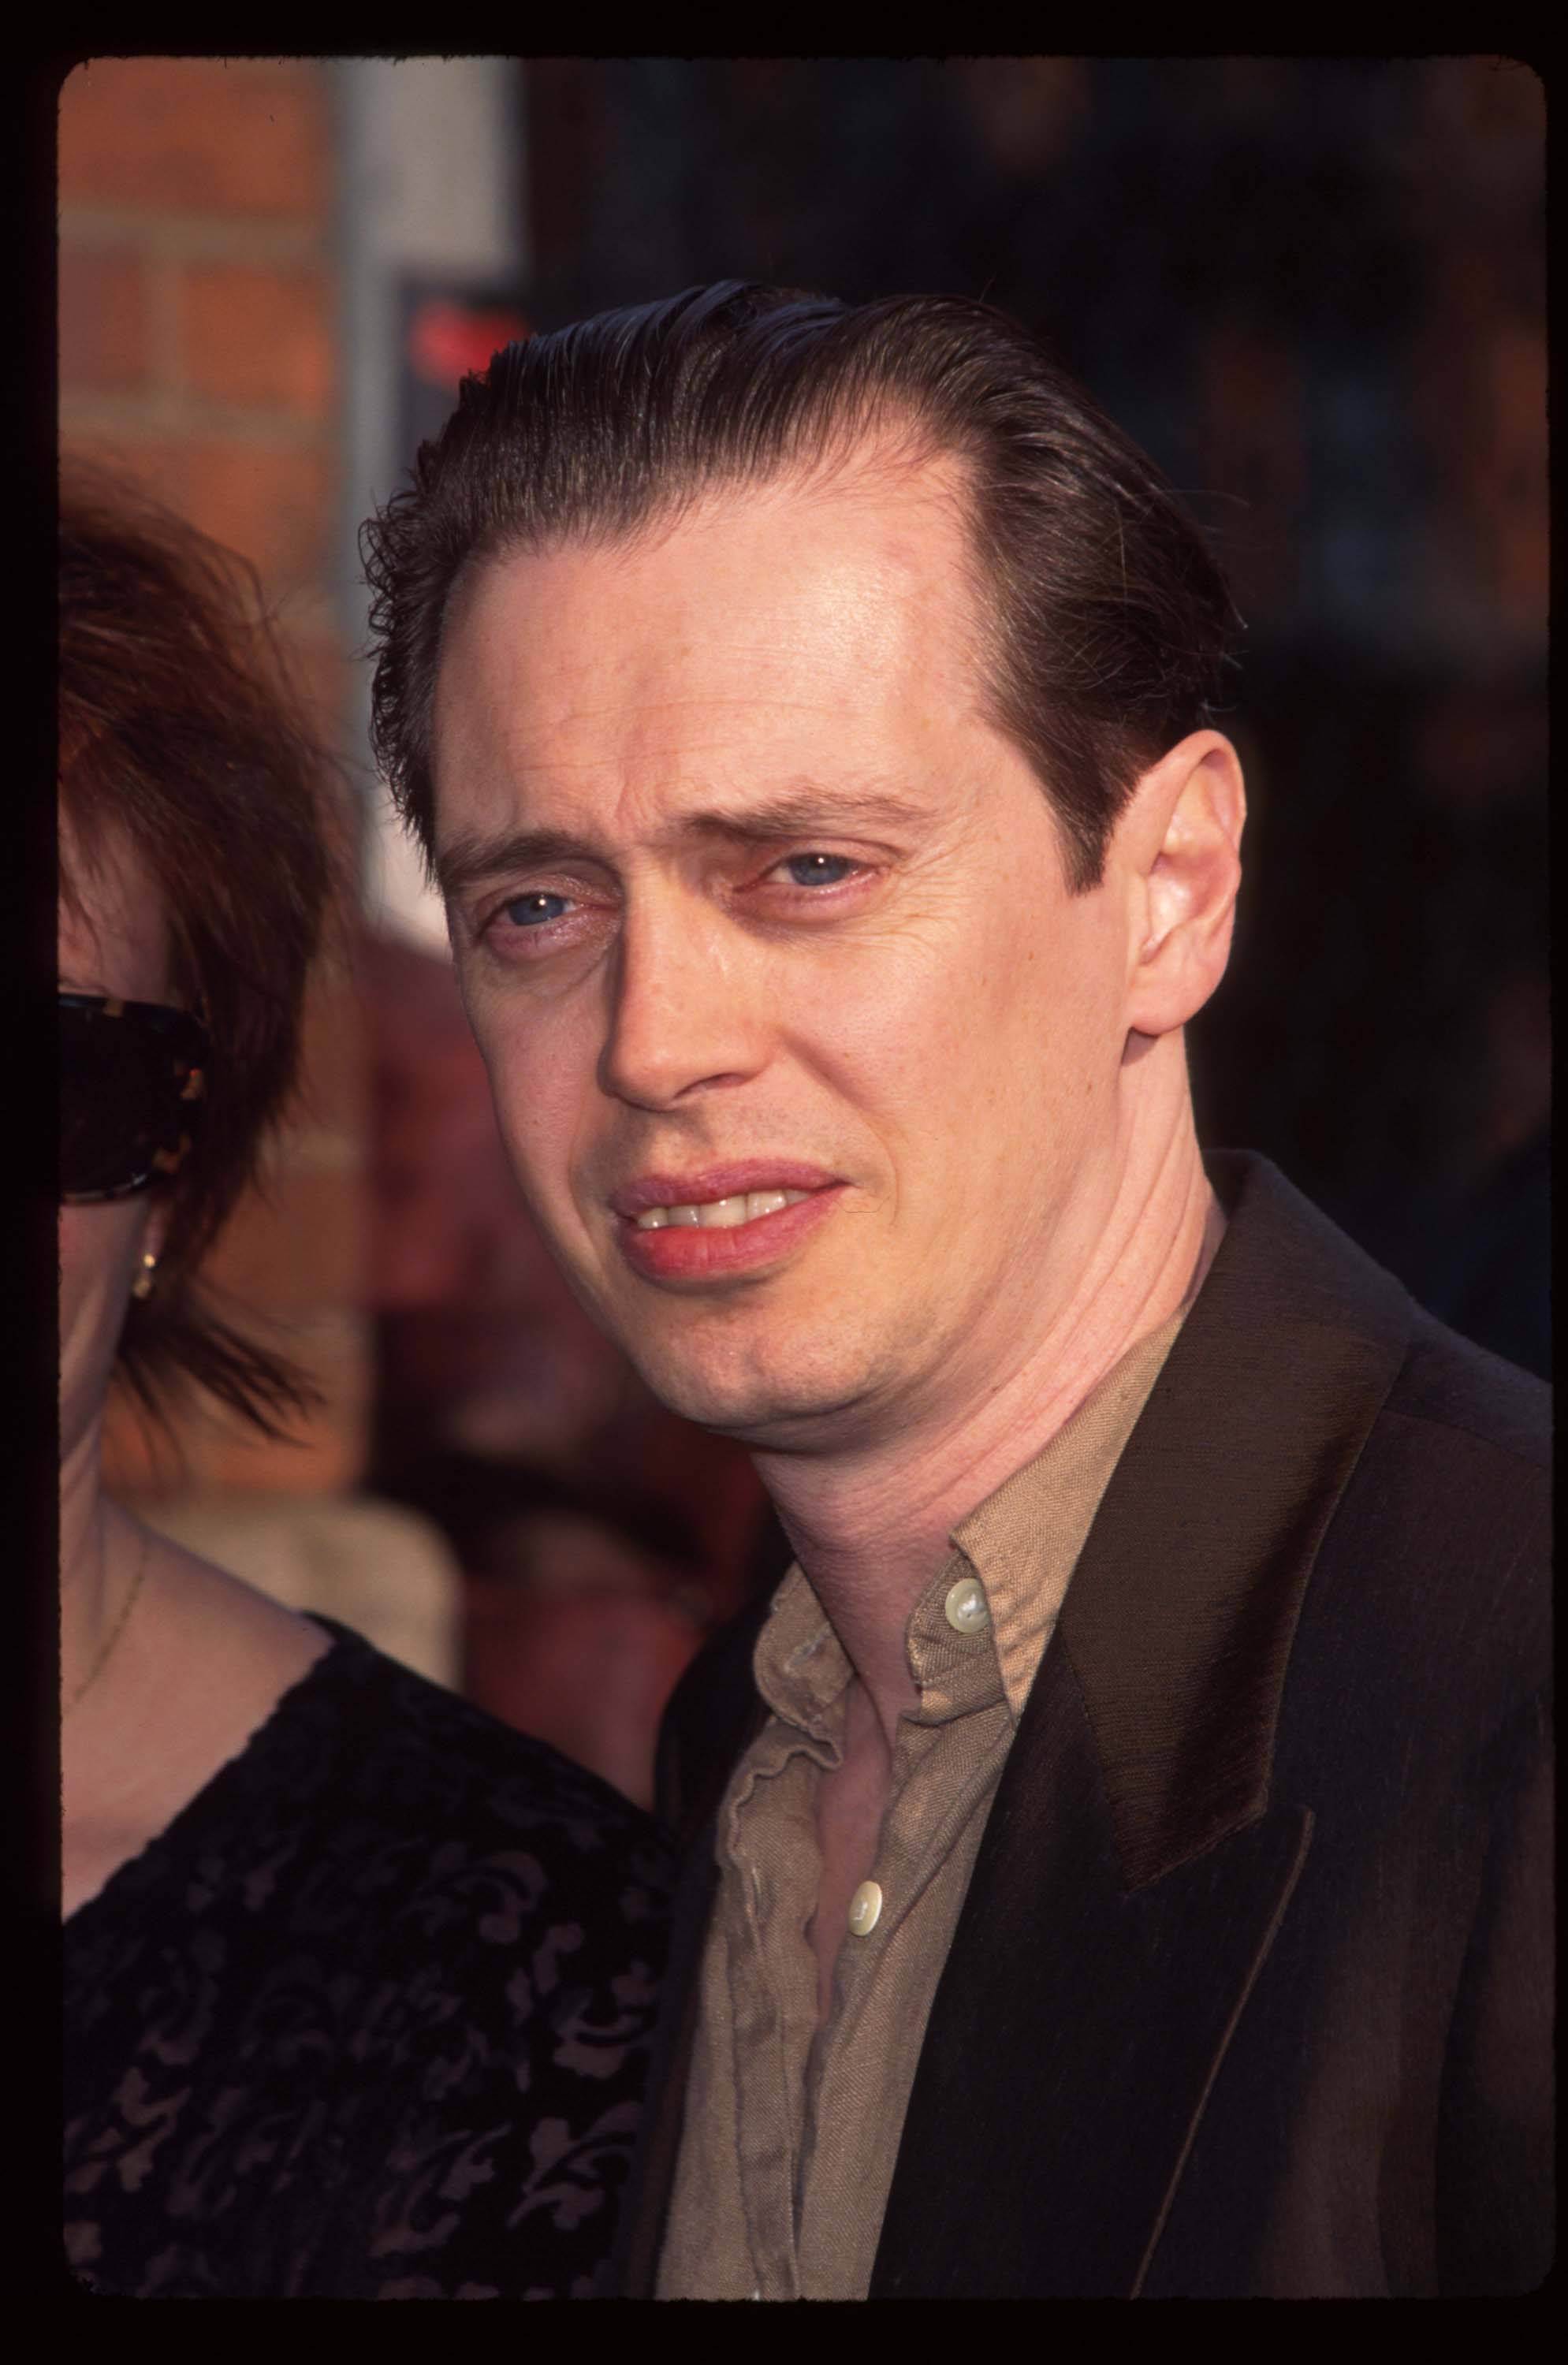 """Steve Buscemi attends the special screening of the film """"Dead Man"""" at the Tribeca Film Center May 5, 1996 in New York City. 